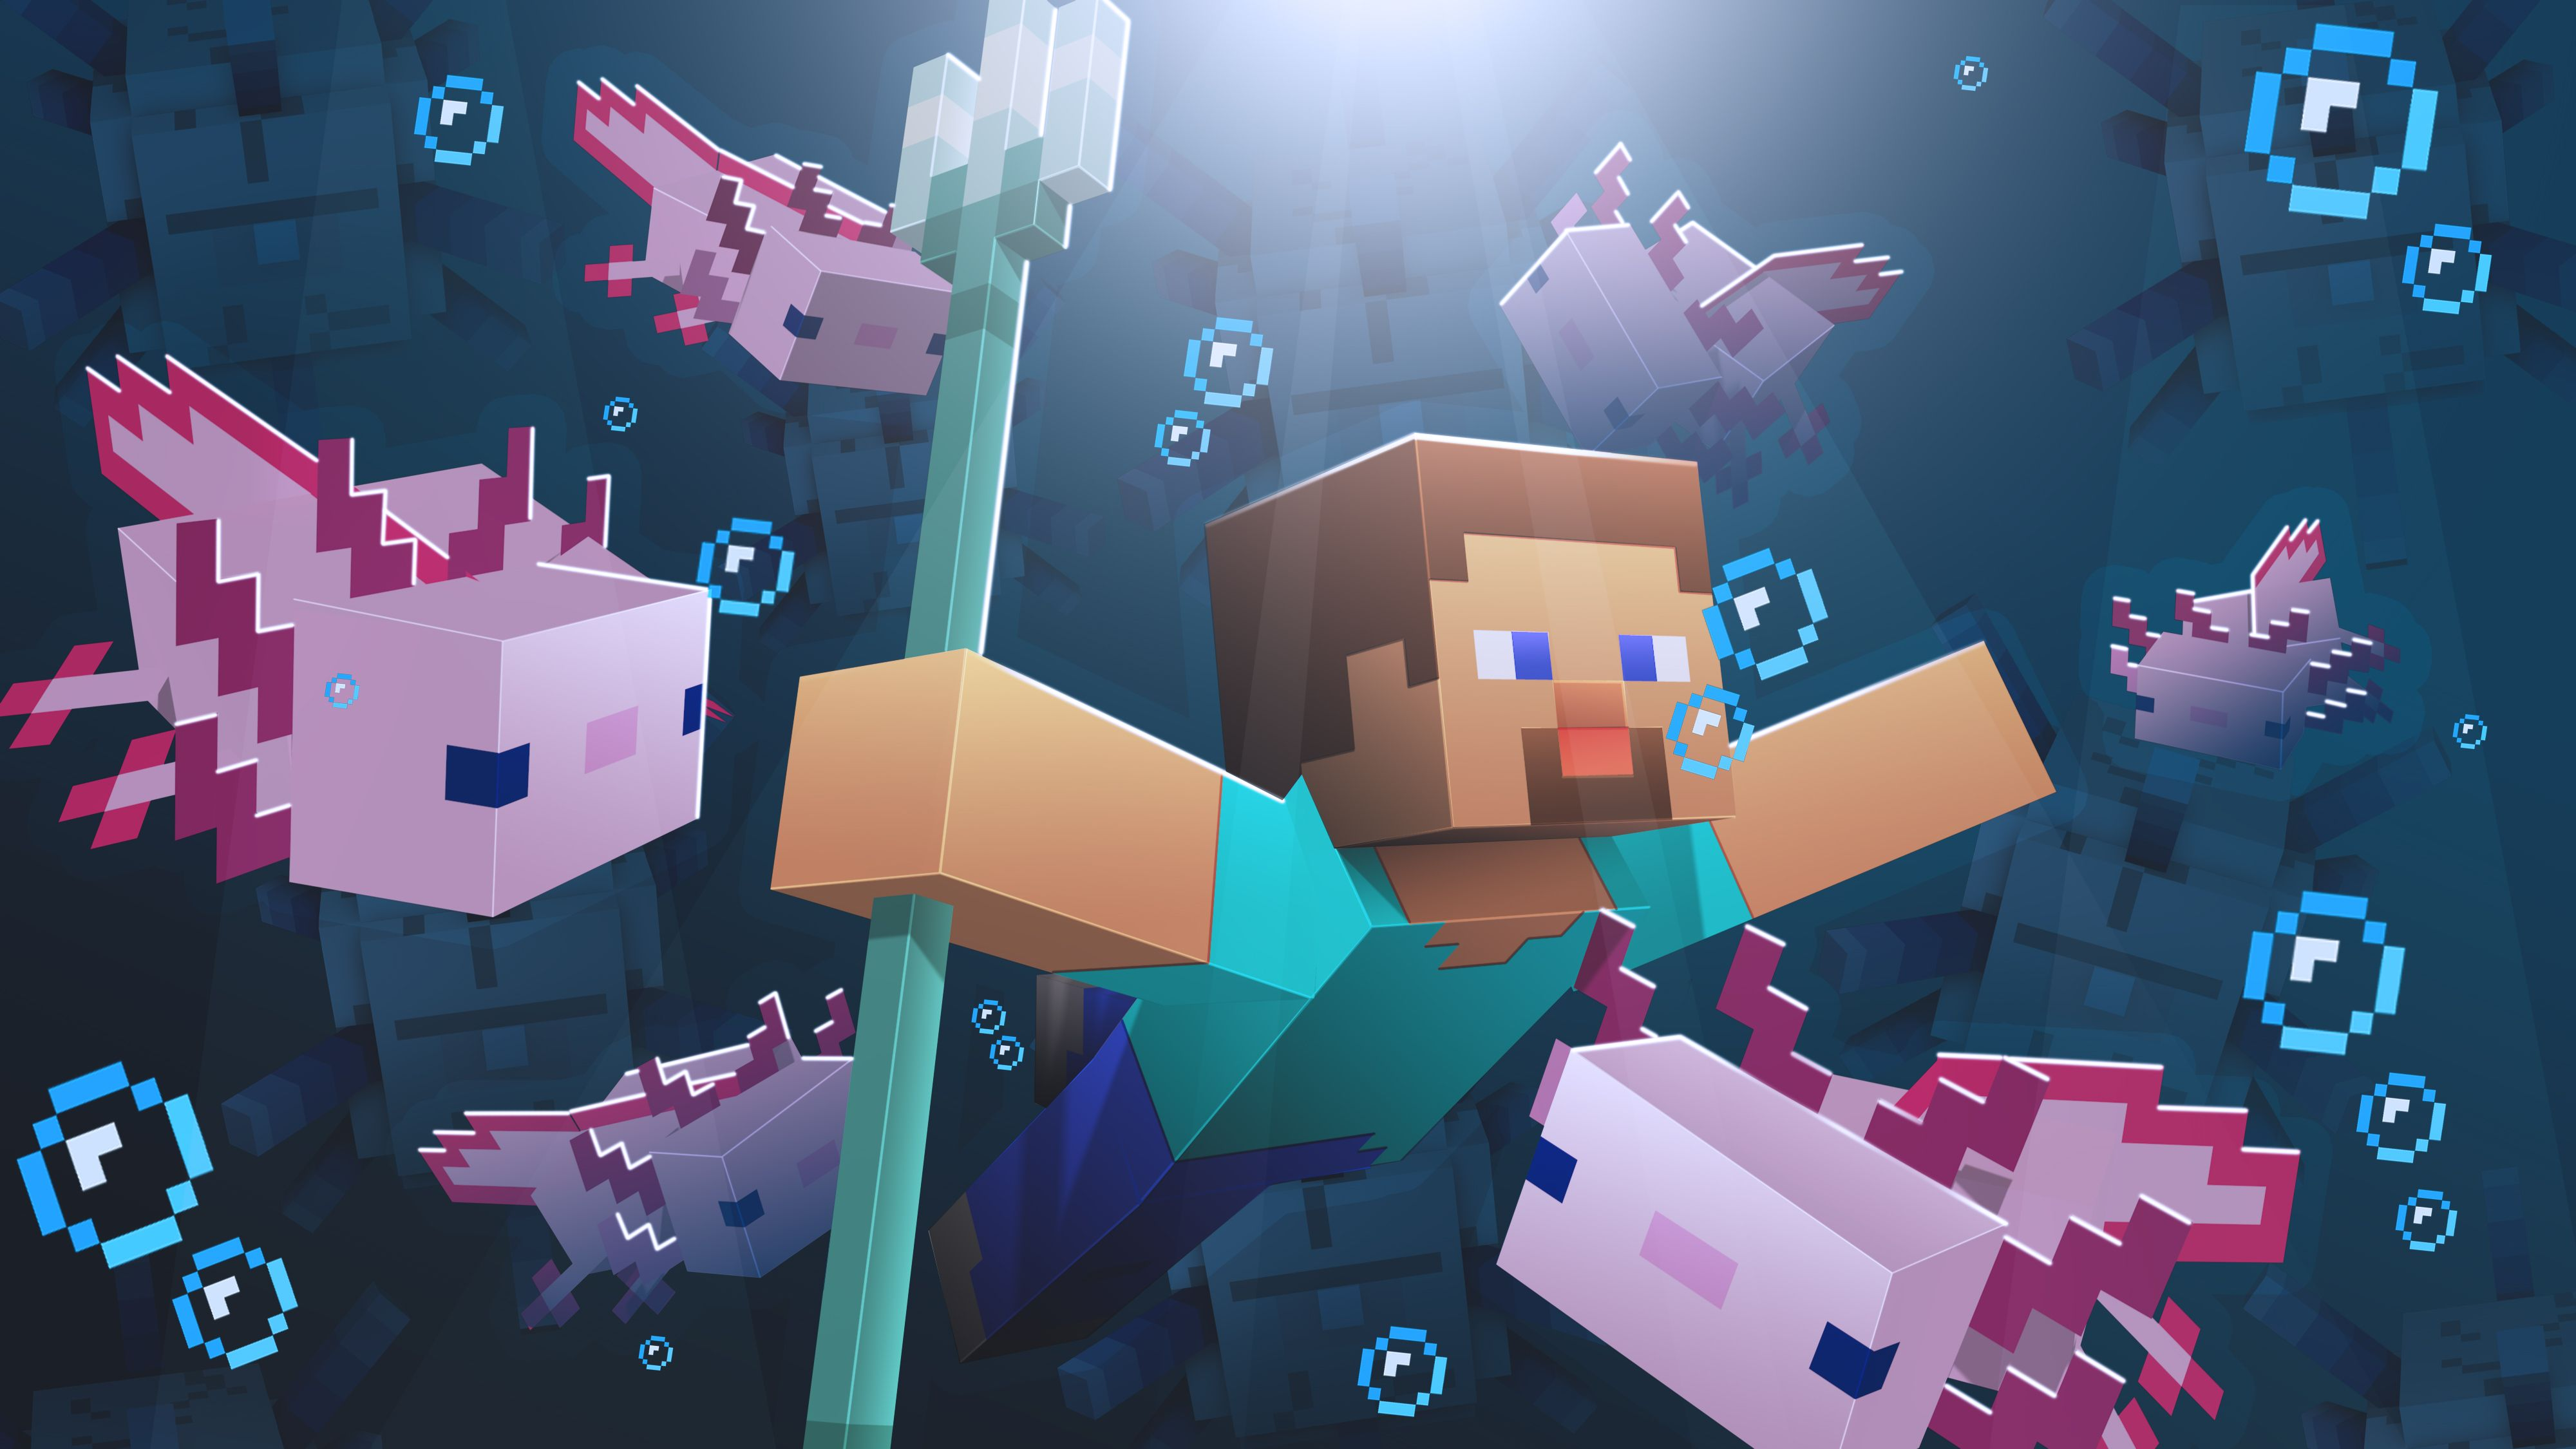 Minecraft Axolotl Awww By U Ky8to Minecraft Wallpaper Minecraft Pictures Minecraft Posters